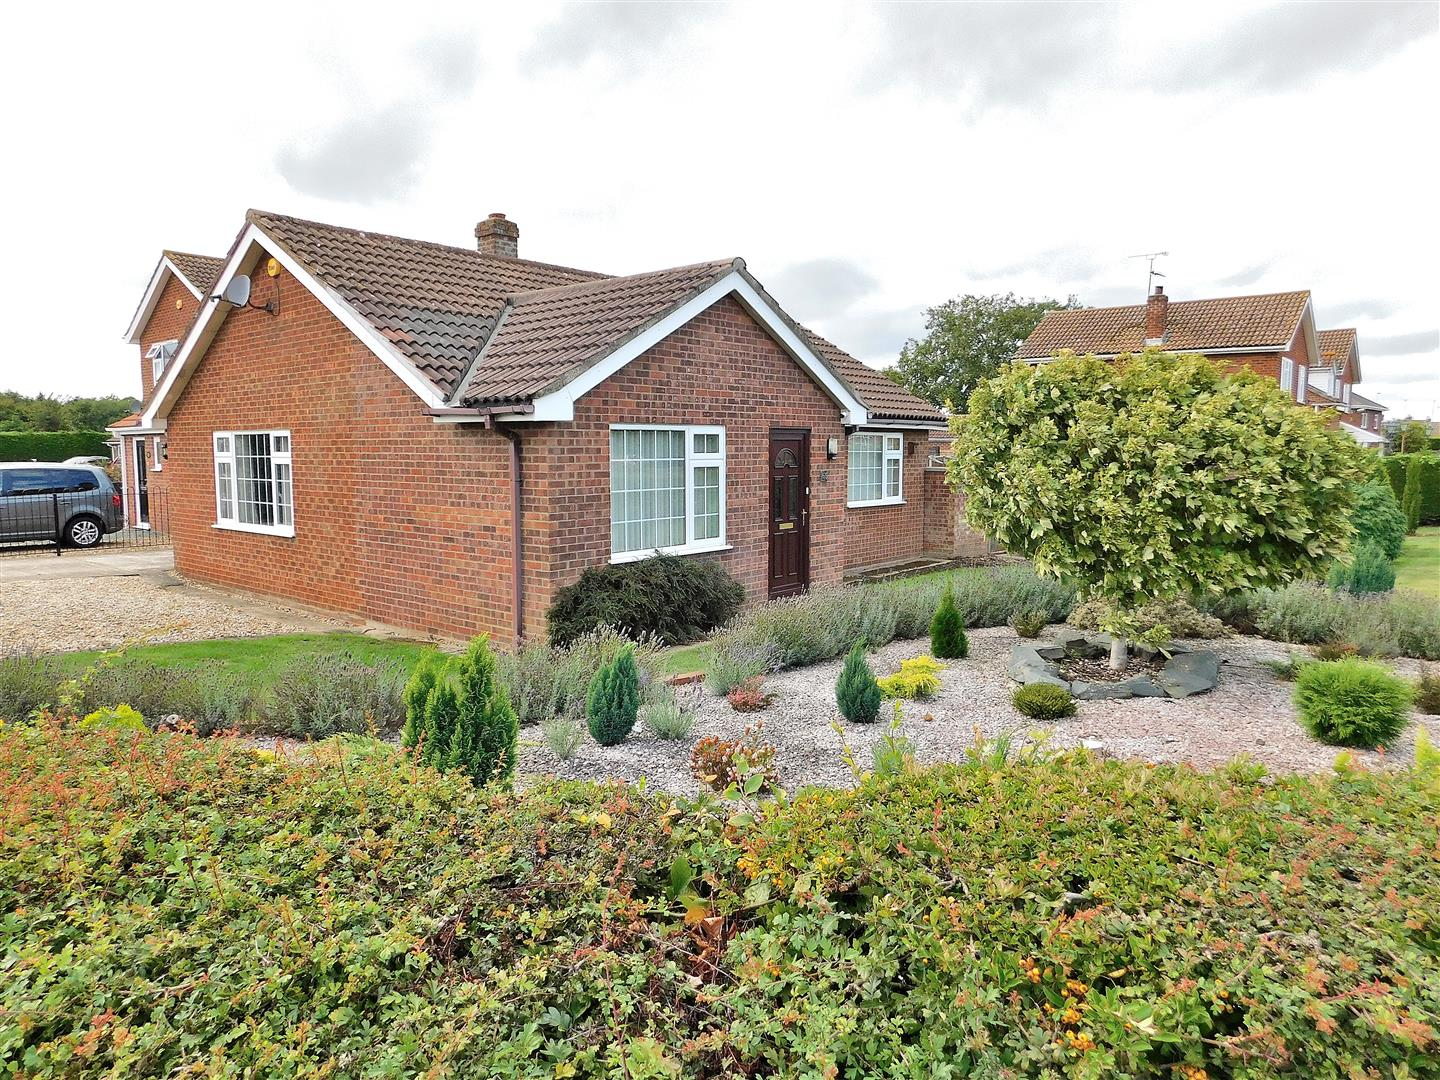 2 bed detached bungalow for sale in Marsh Road, King's Lynn, PE34